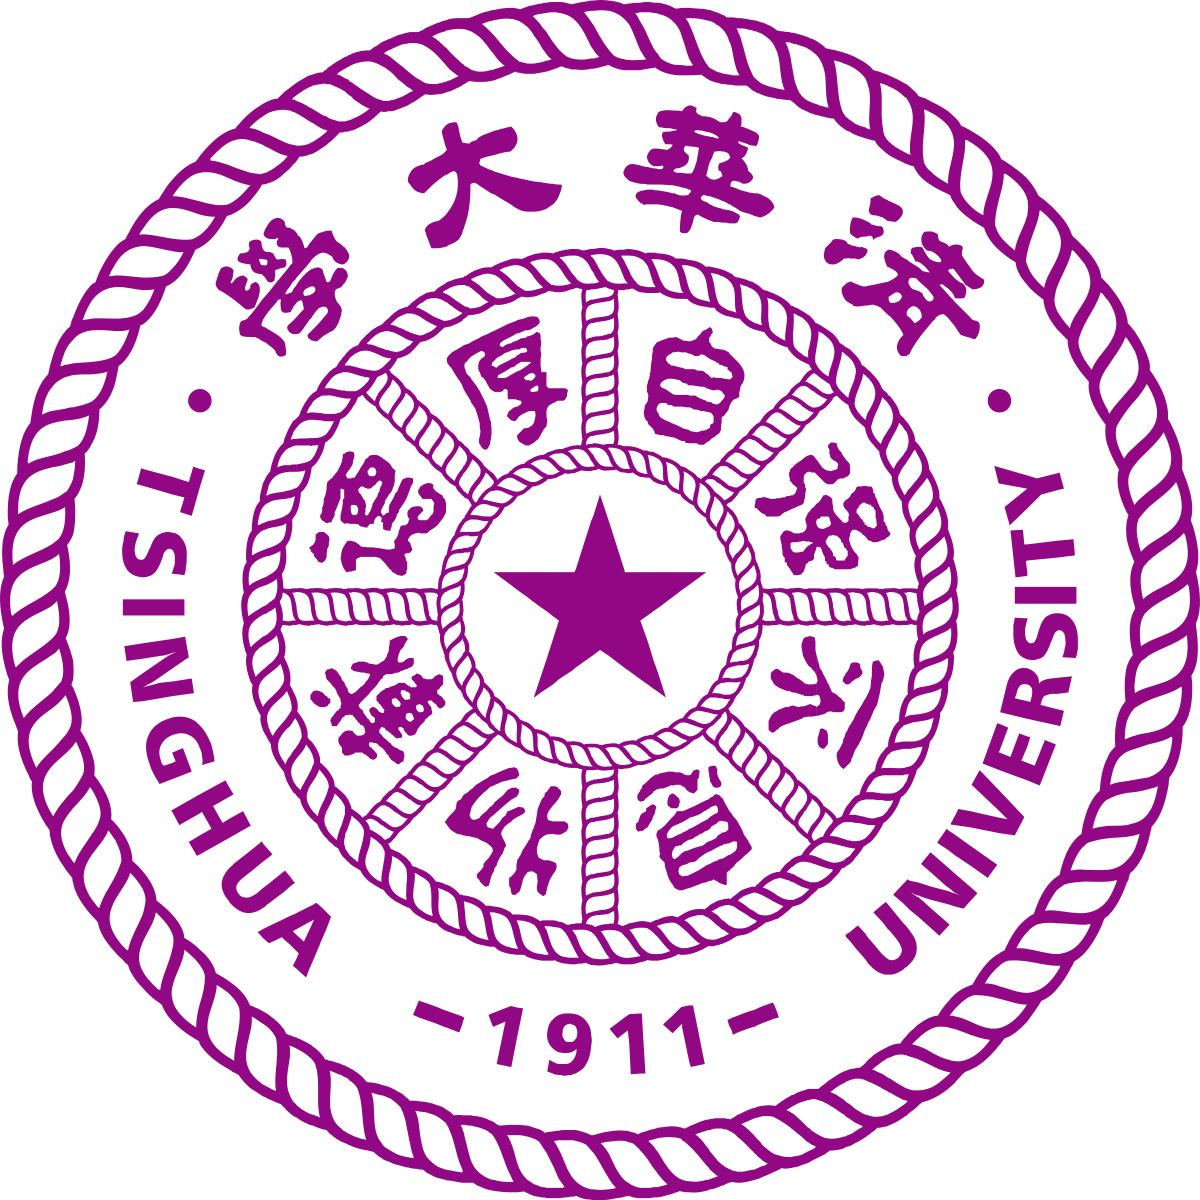 Education: B.Eng. in Tsinghua University